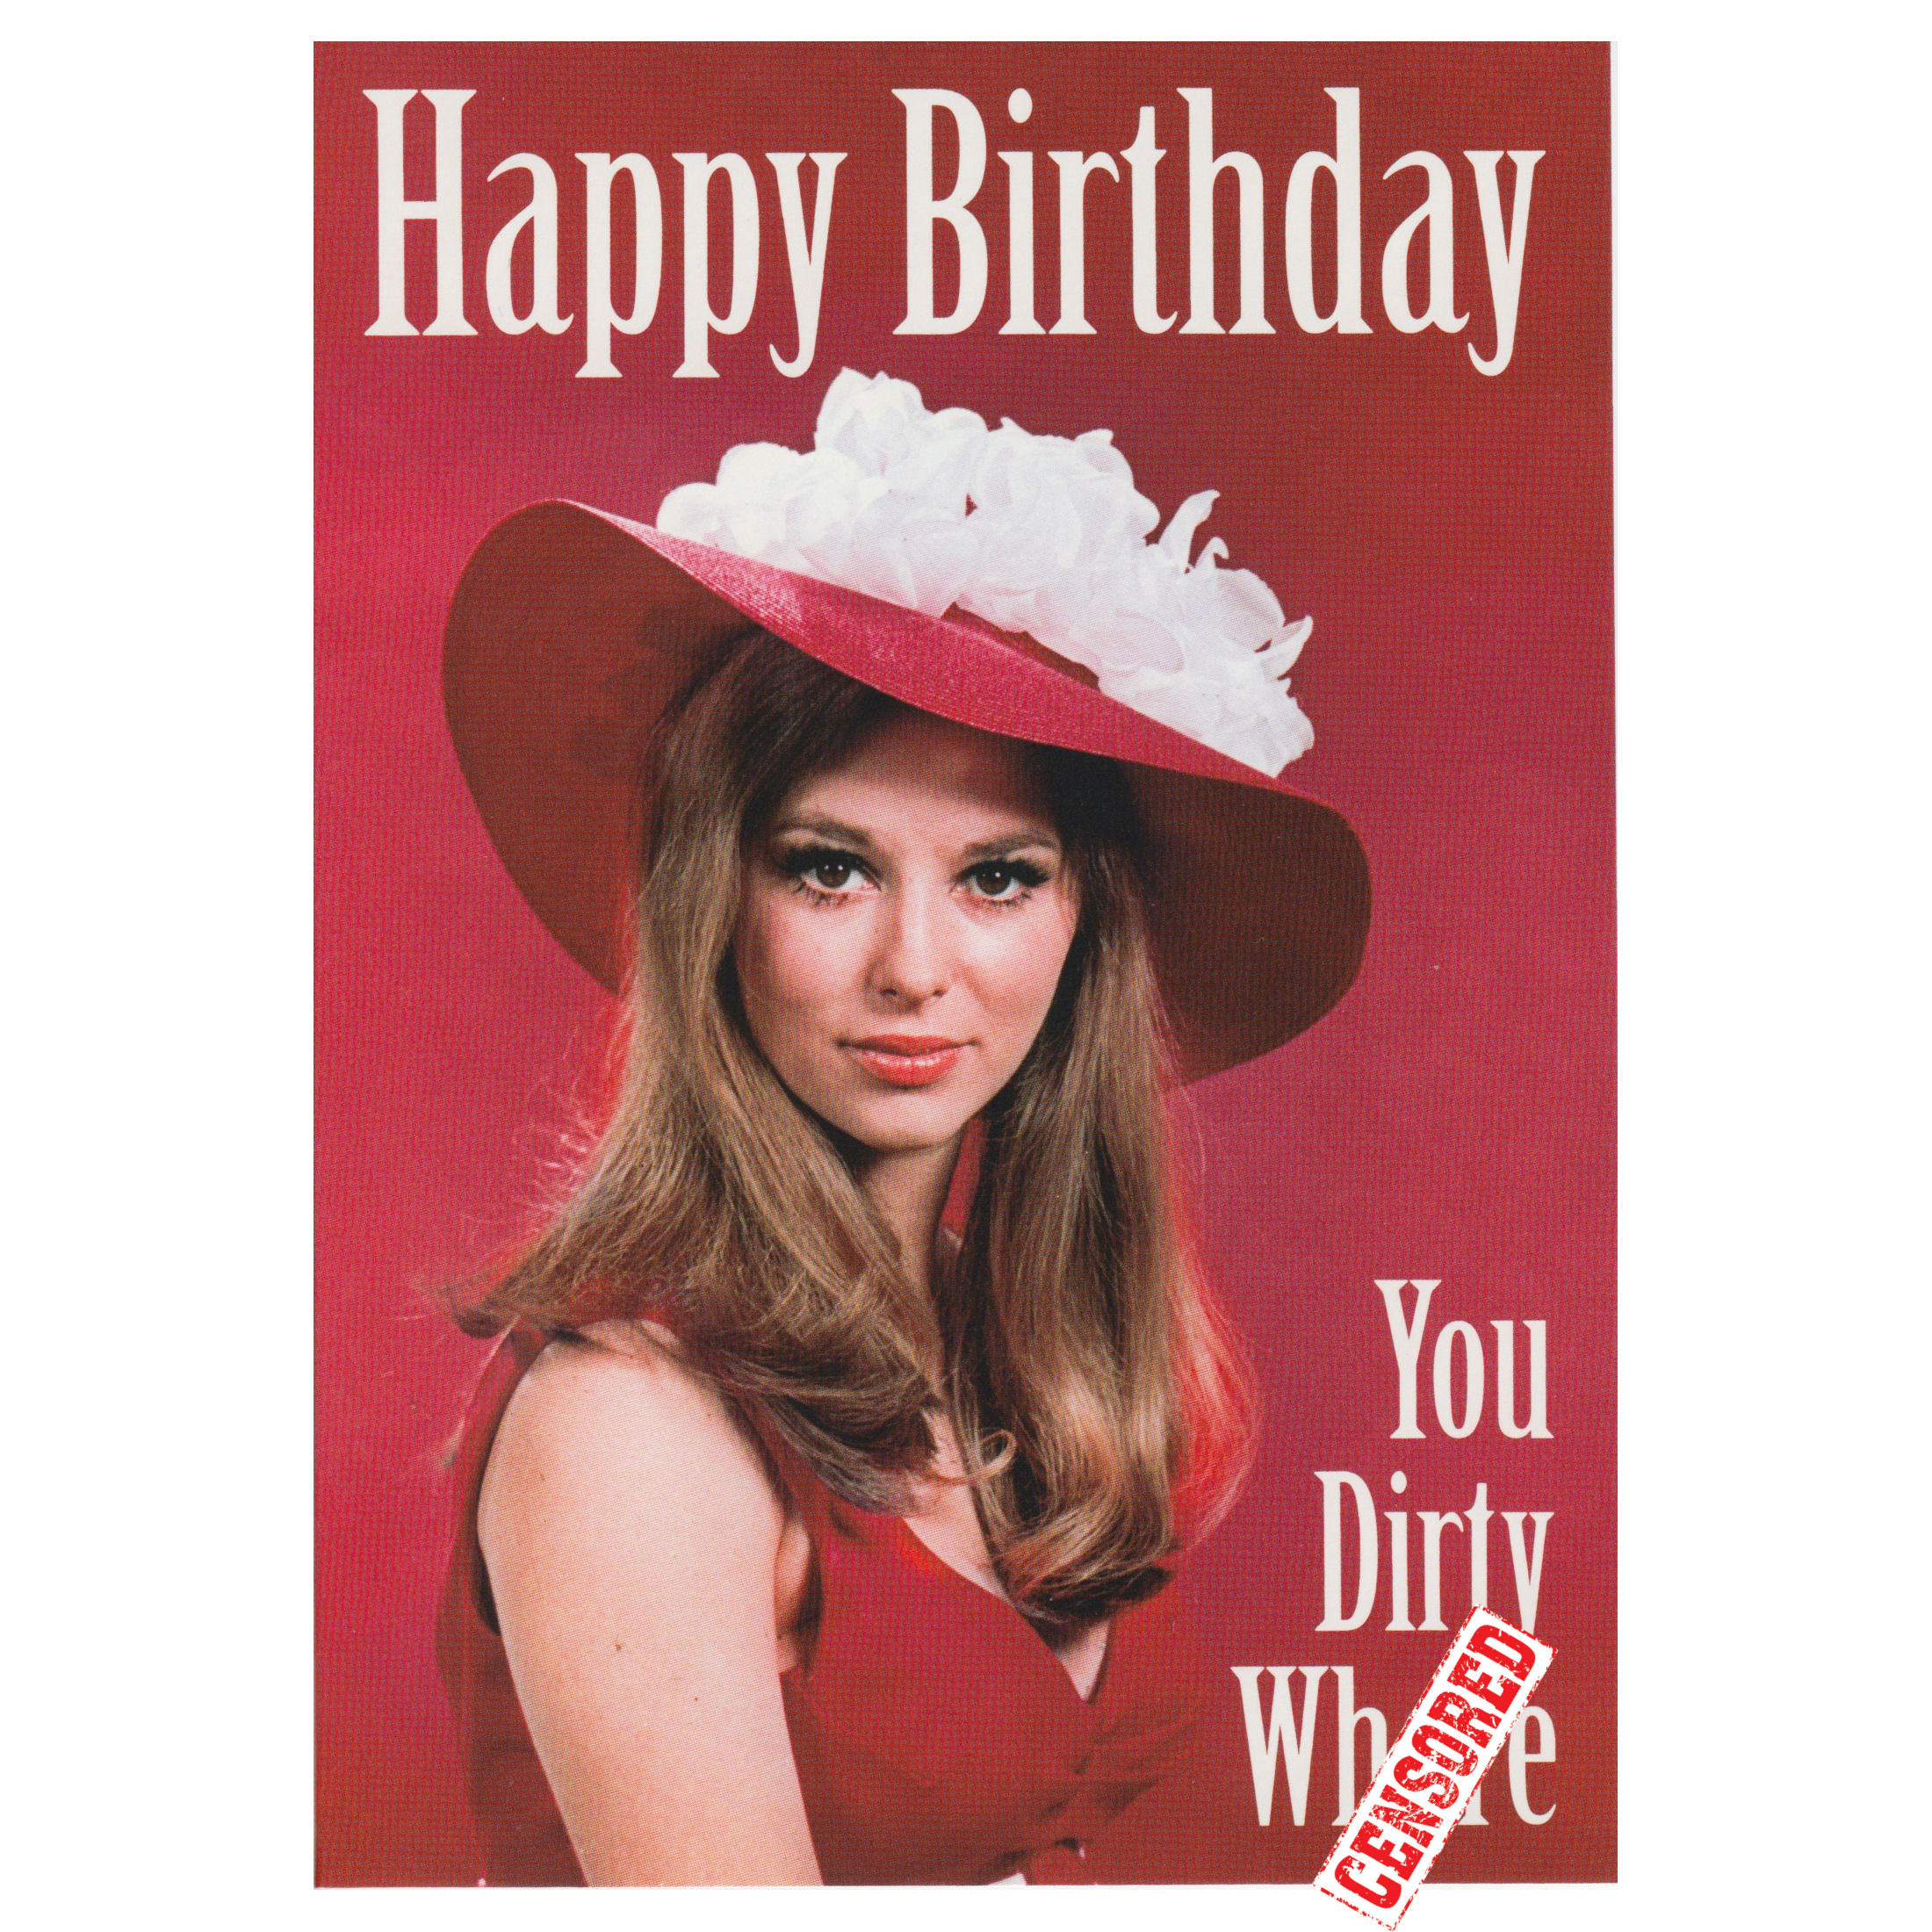 HAPPY BIRTHDAY YOU DIRTY WHRE GREETING CARD BIRTHDAY ADULT HUMOUR – Rolling Stones Birthday Card